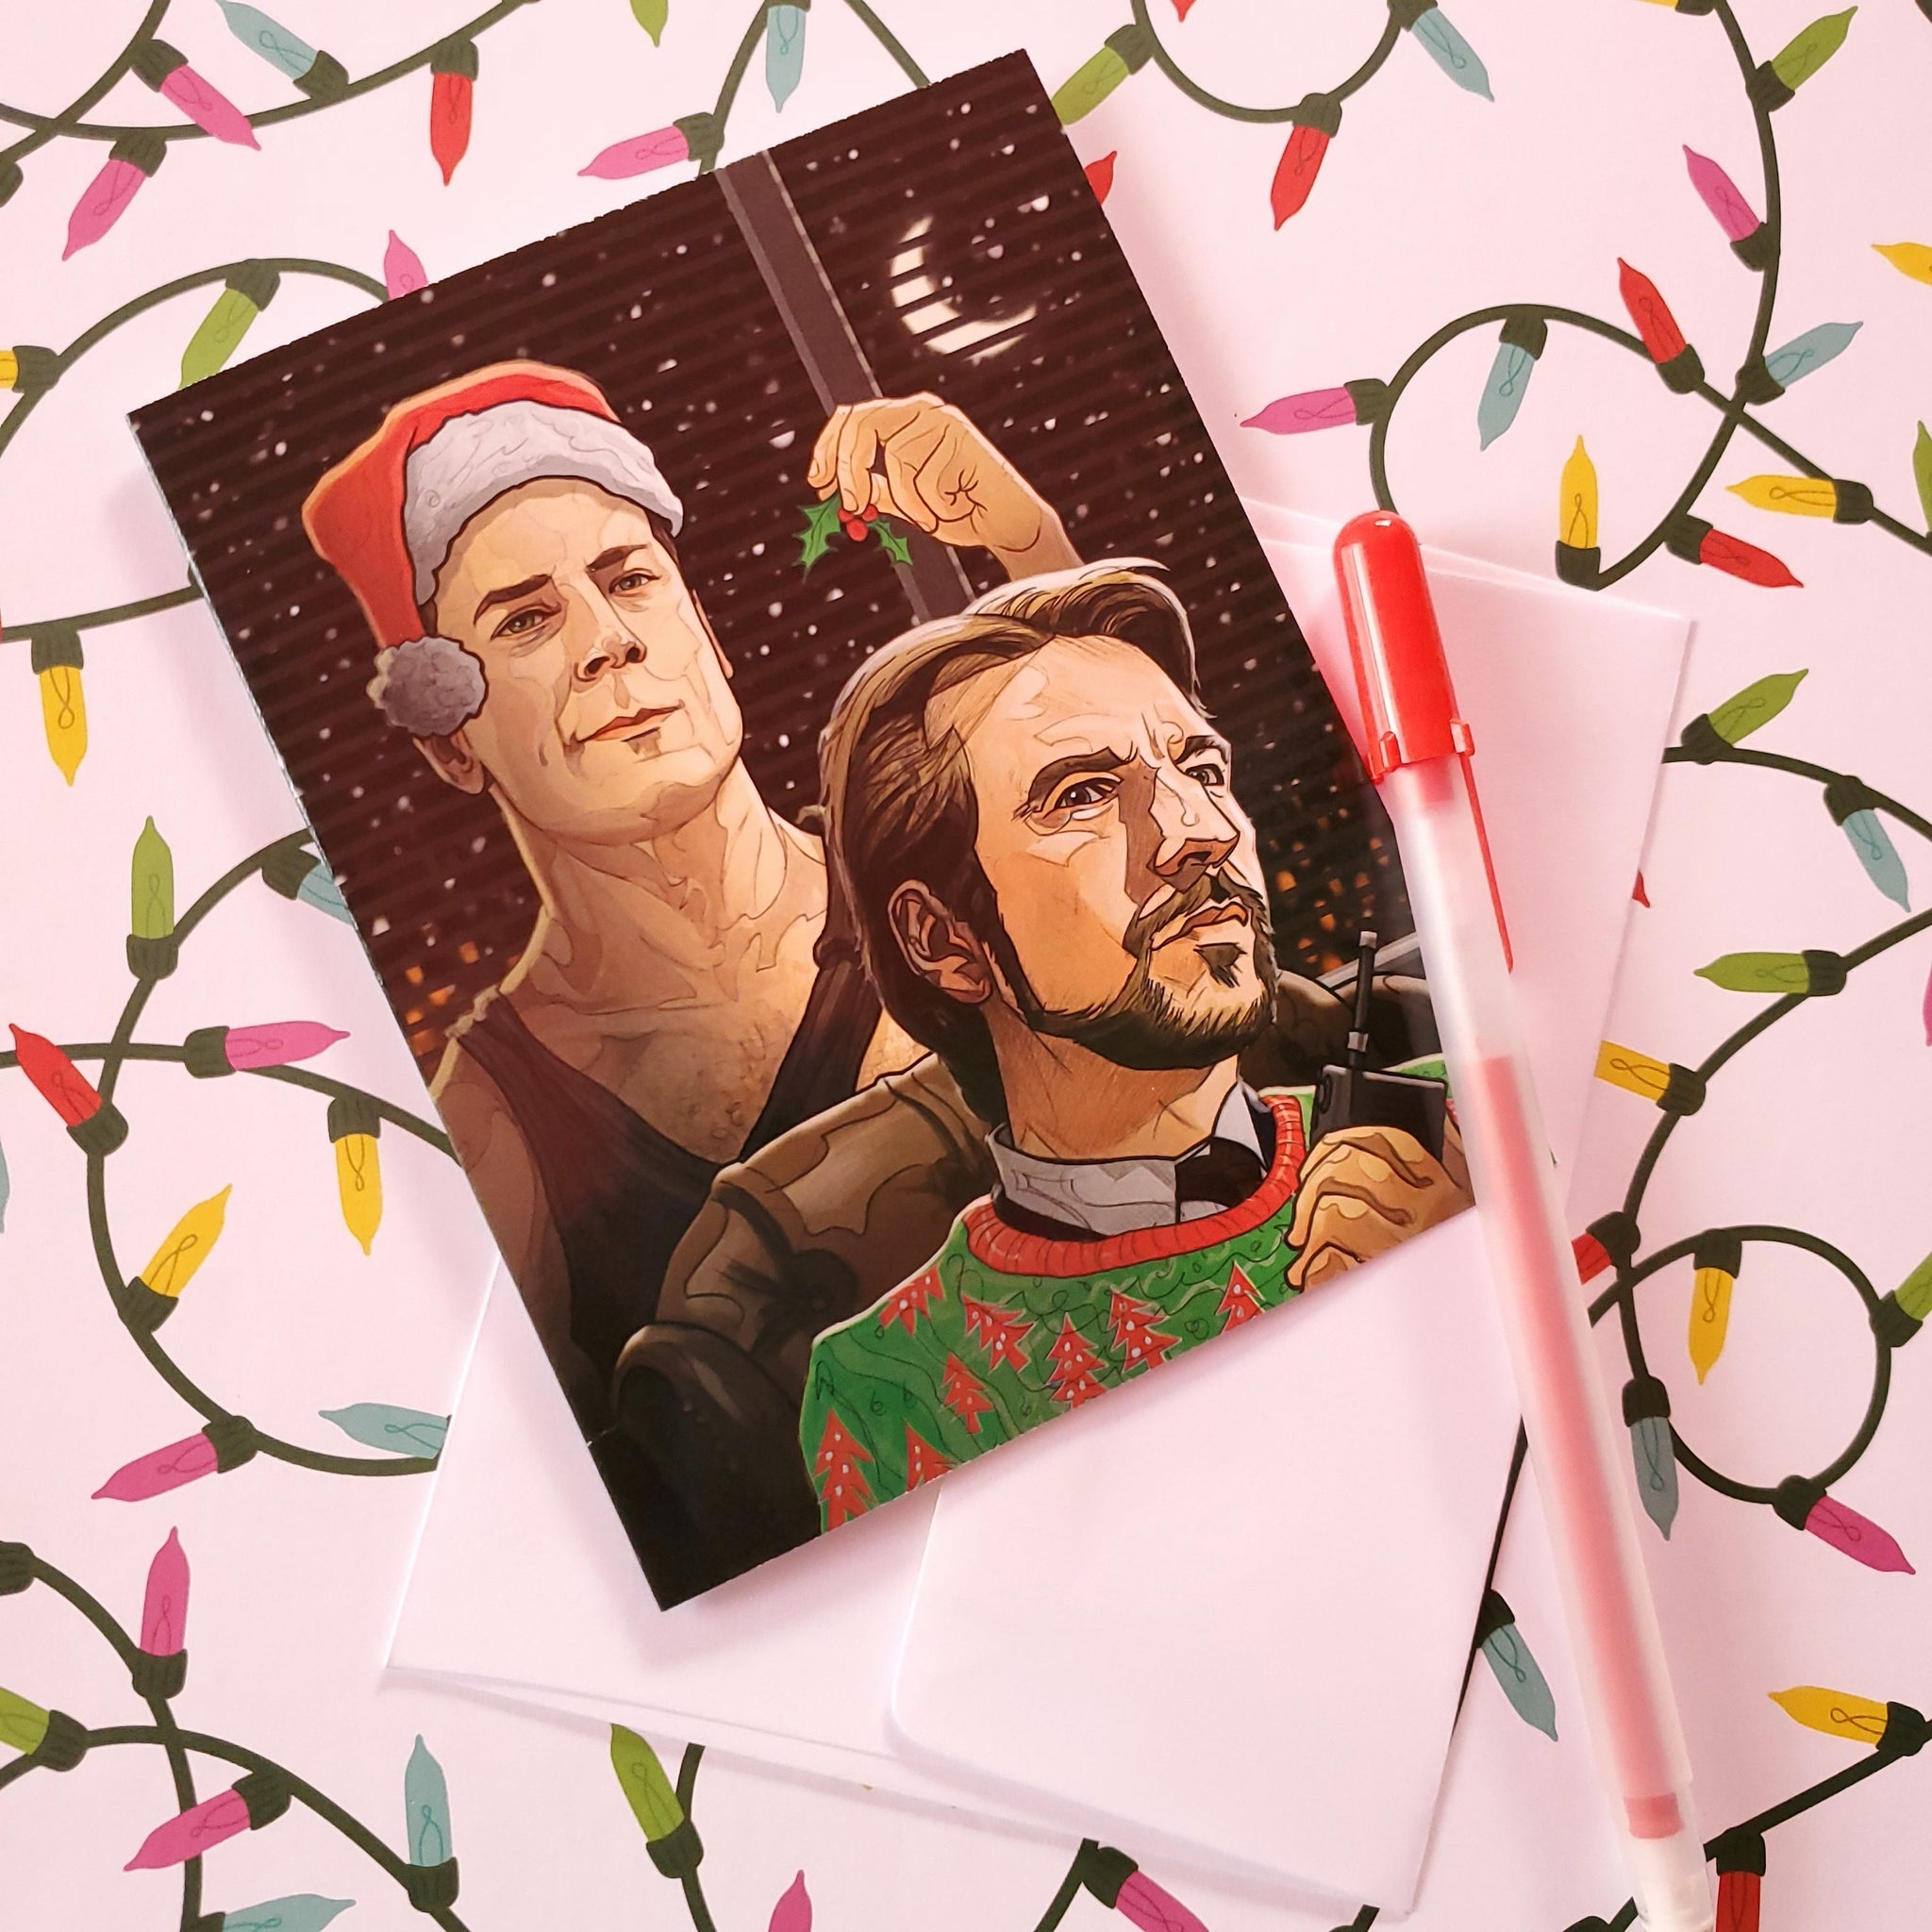 hans and mcclane christmas card - Funky Cat Emporium